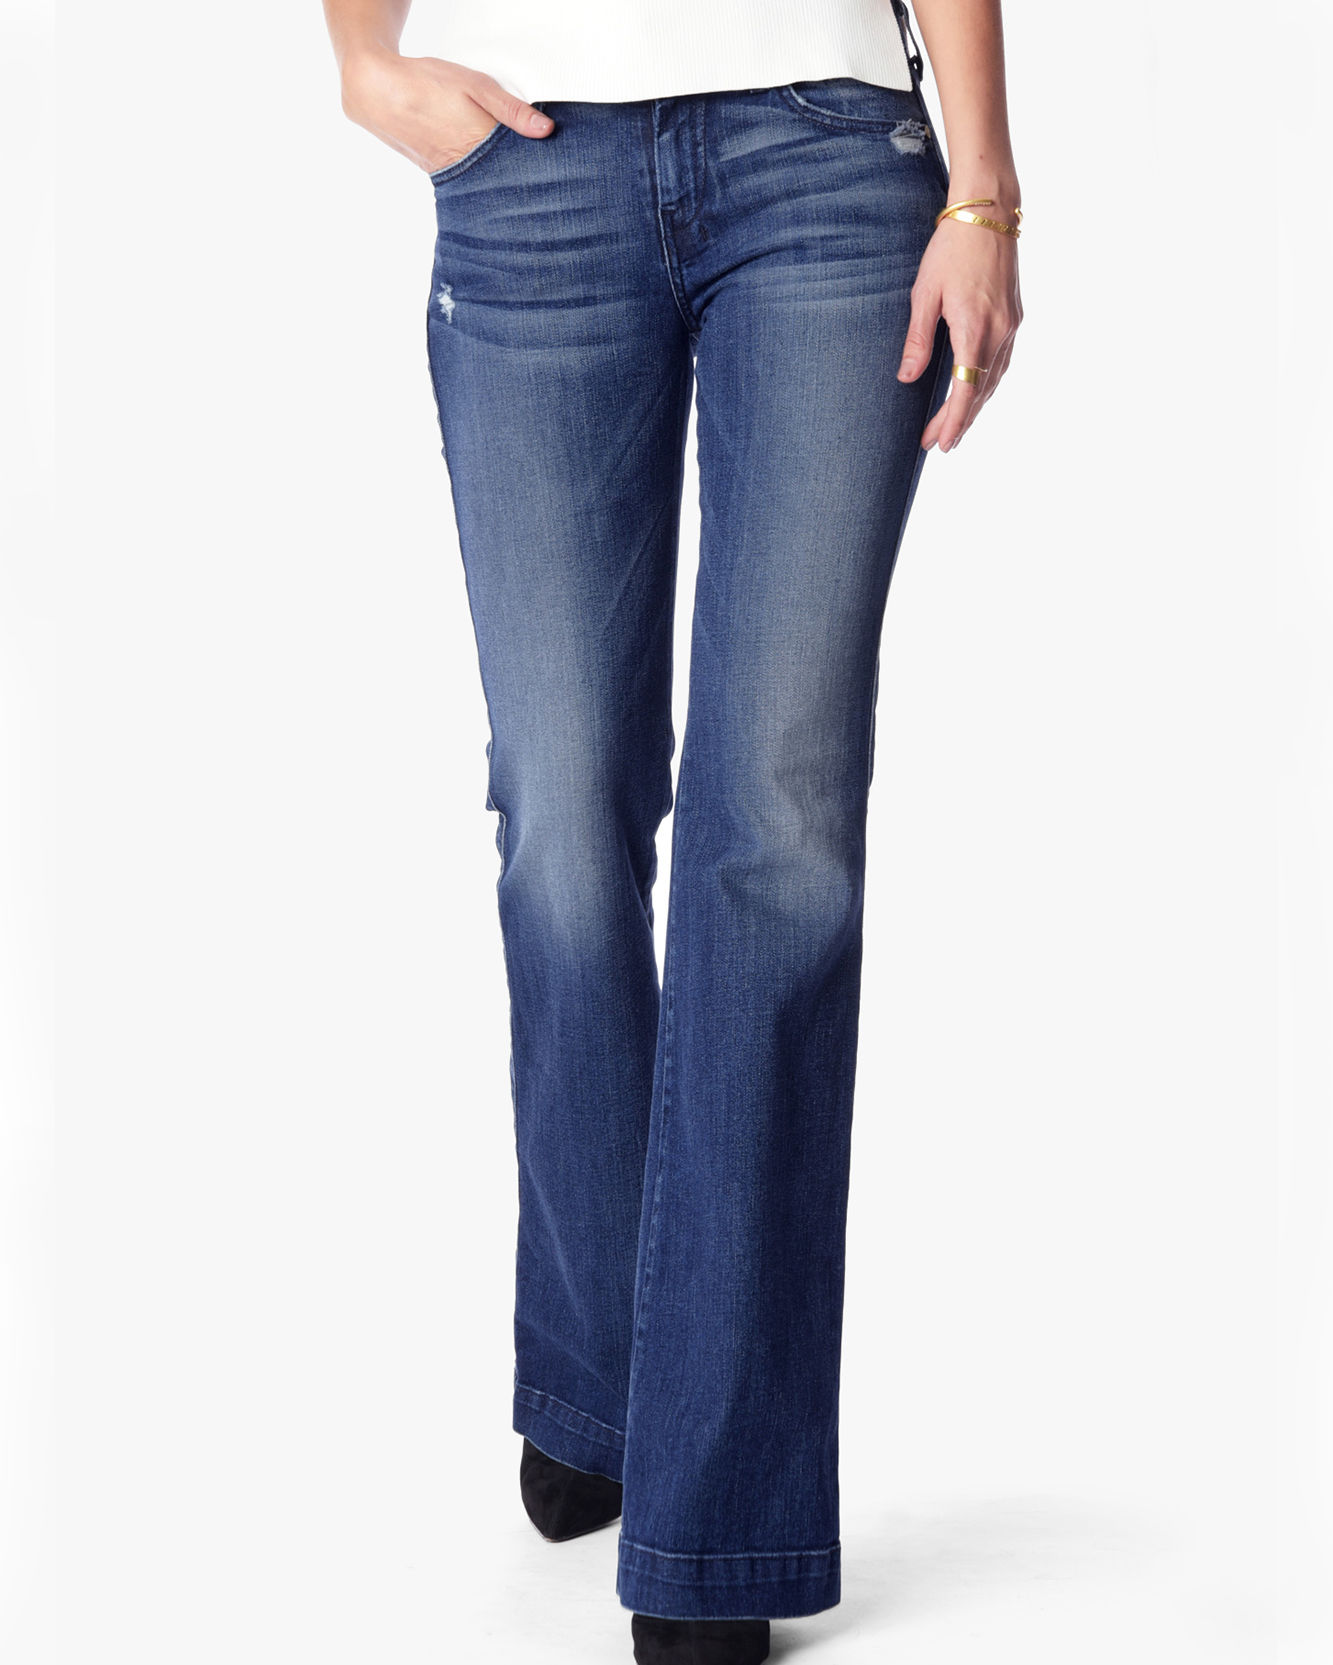 jeans with fading and whiskers on thighs